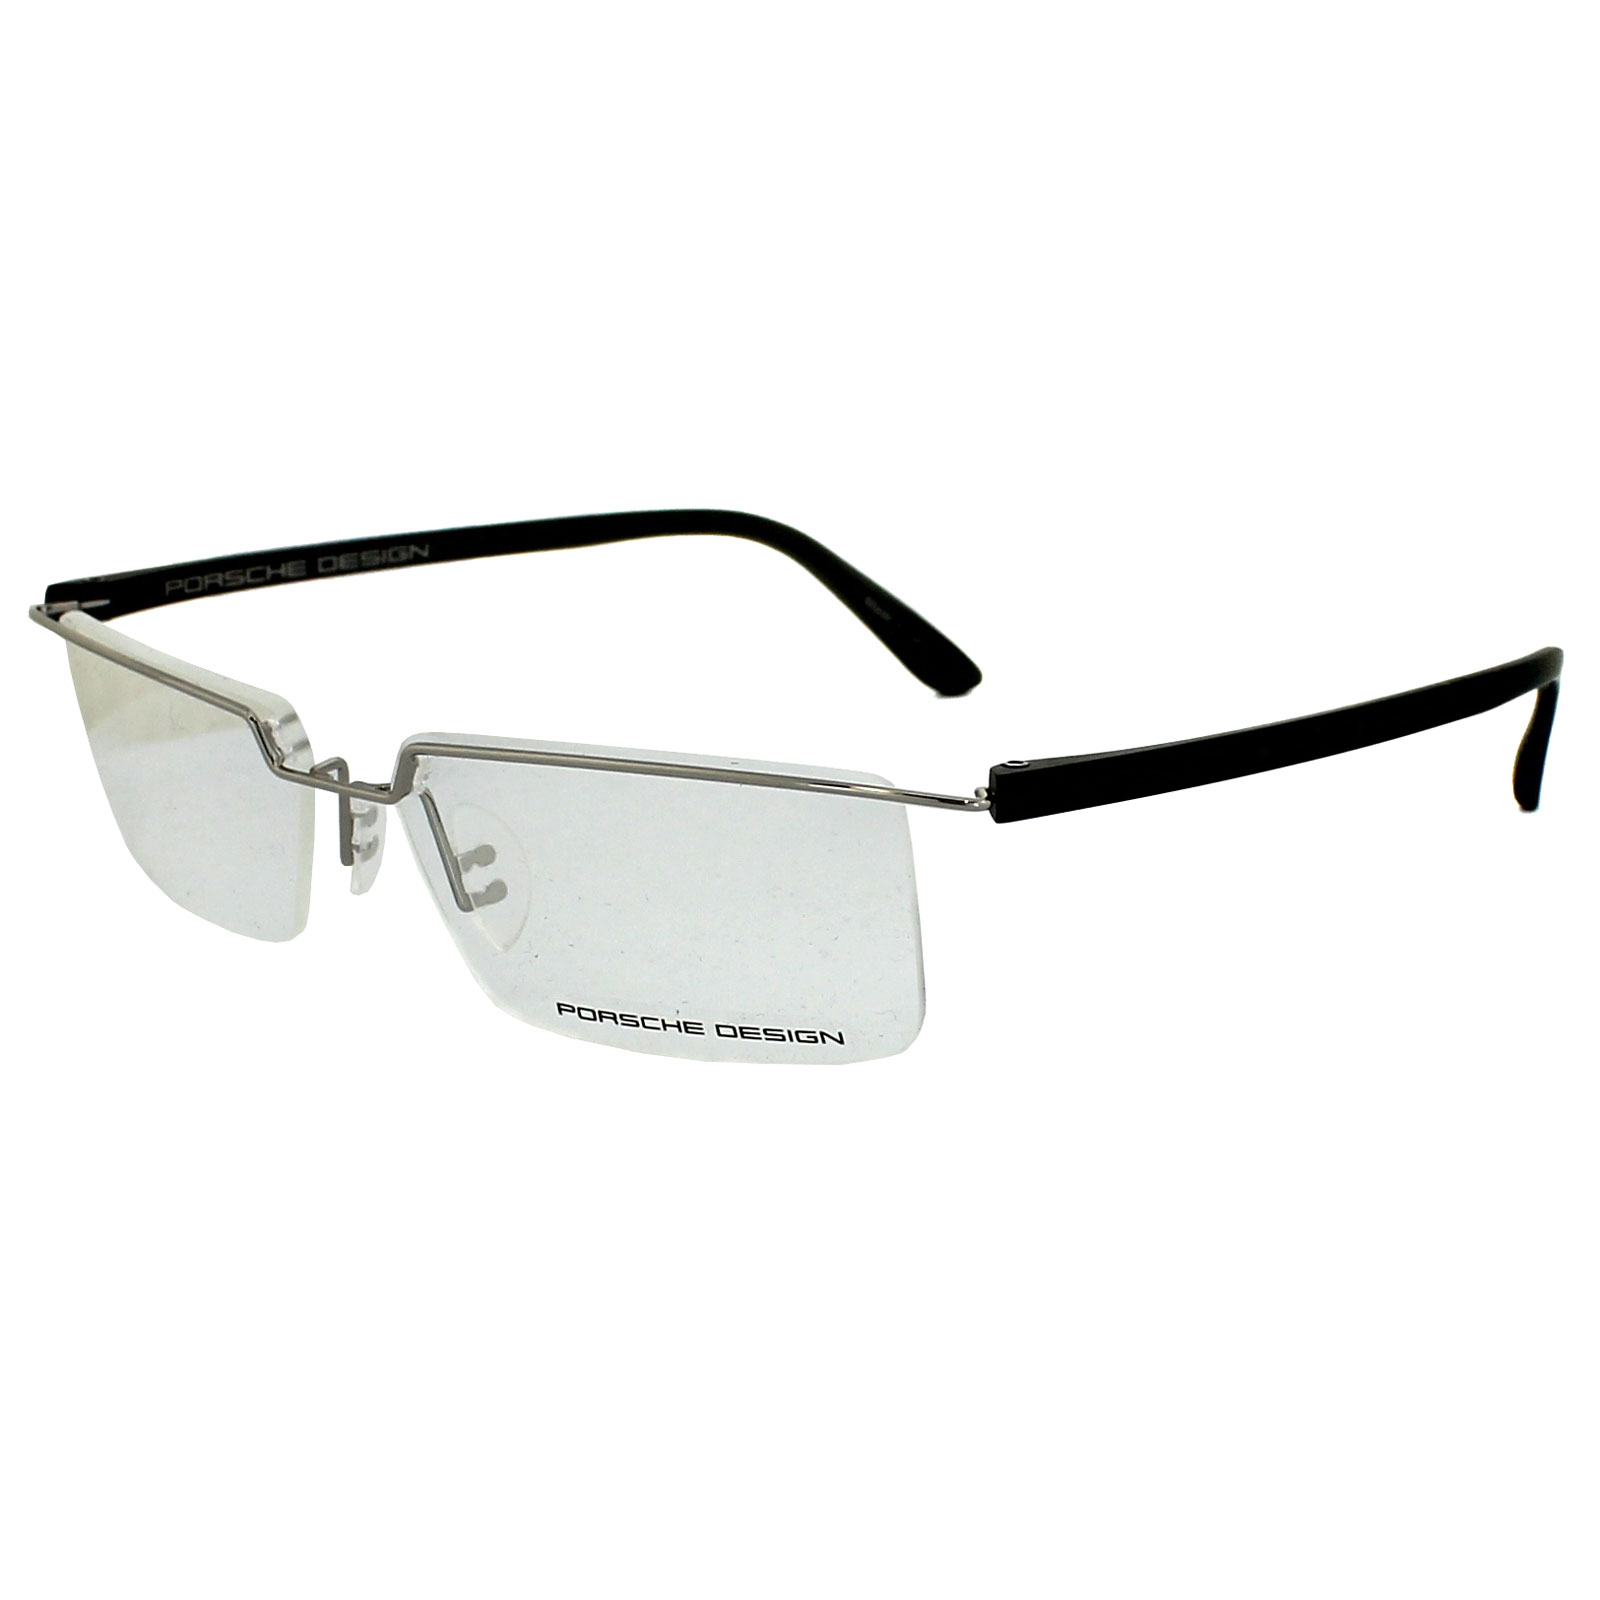 Porsche Design Glasses Frame : Porsche Design Glasses Frames P8227 D Silver & Black eBay